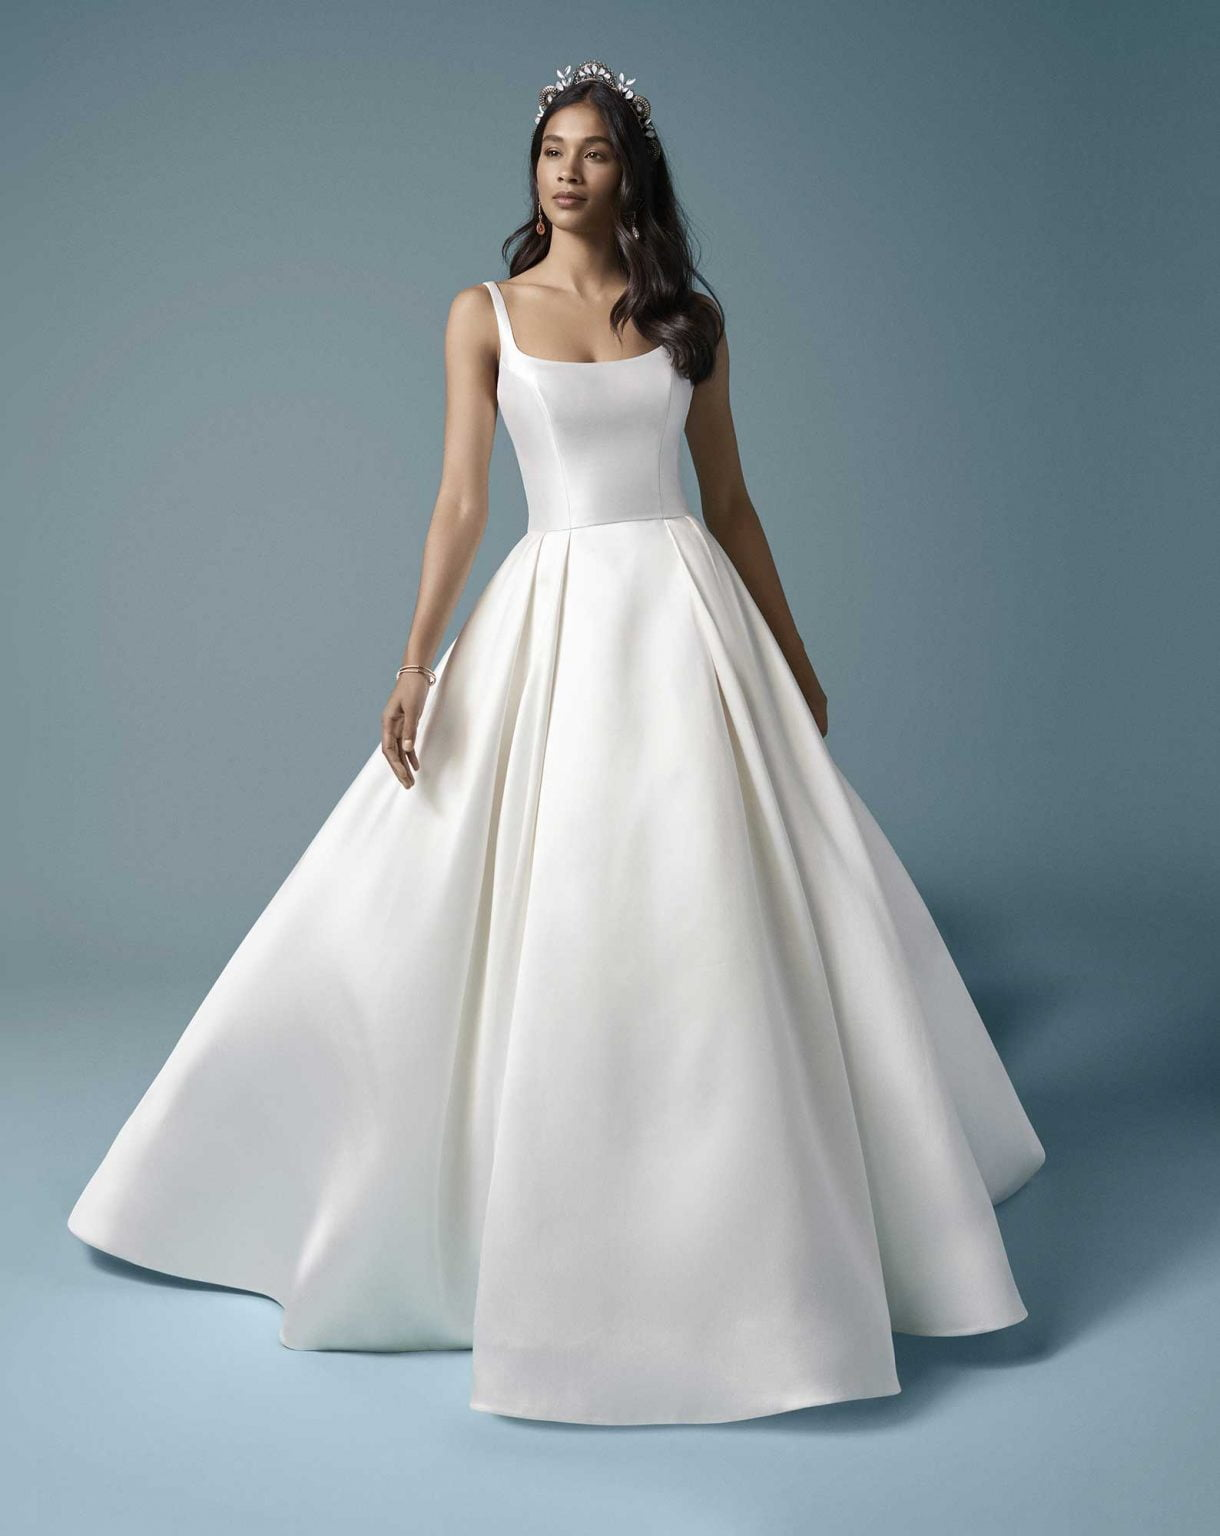 High---Maggie-Sottero-Selena-20MT727-Main-IV-Uncropped